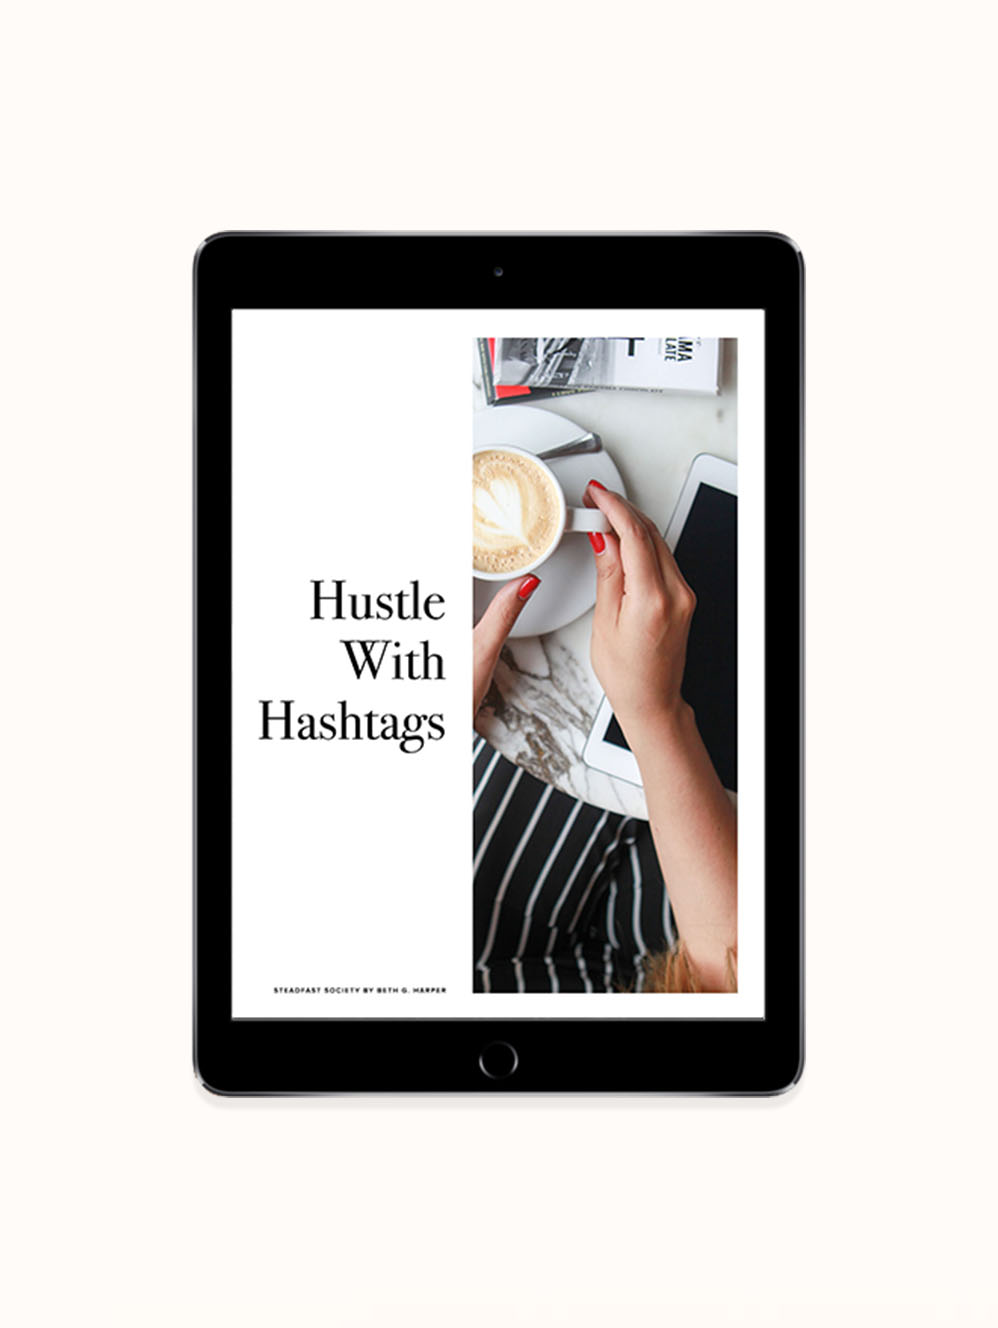 Copy of <p><strong>Hustle With Hashtags</strong>FREE<a href=https://bethgharper.lpages.co/hustle-with-hashtags/>More →</a></p>